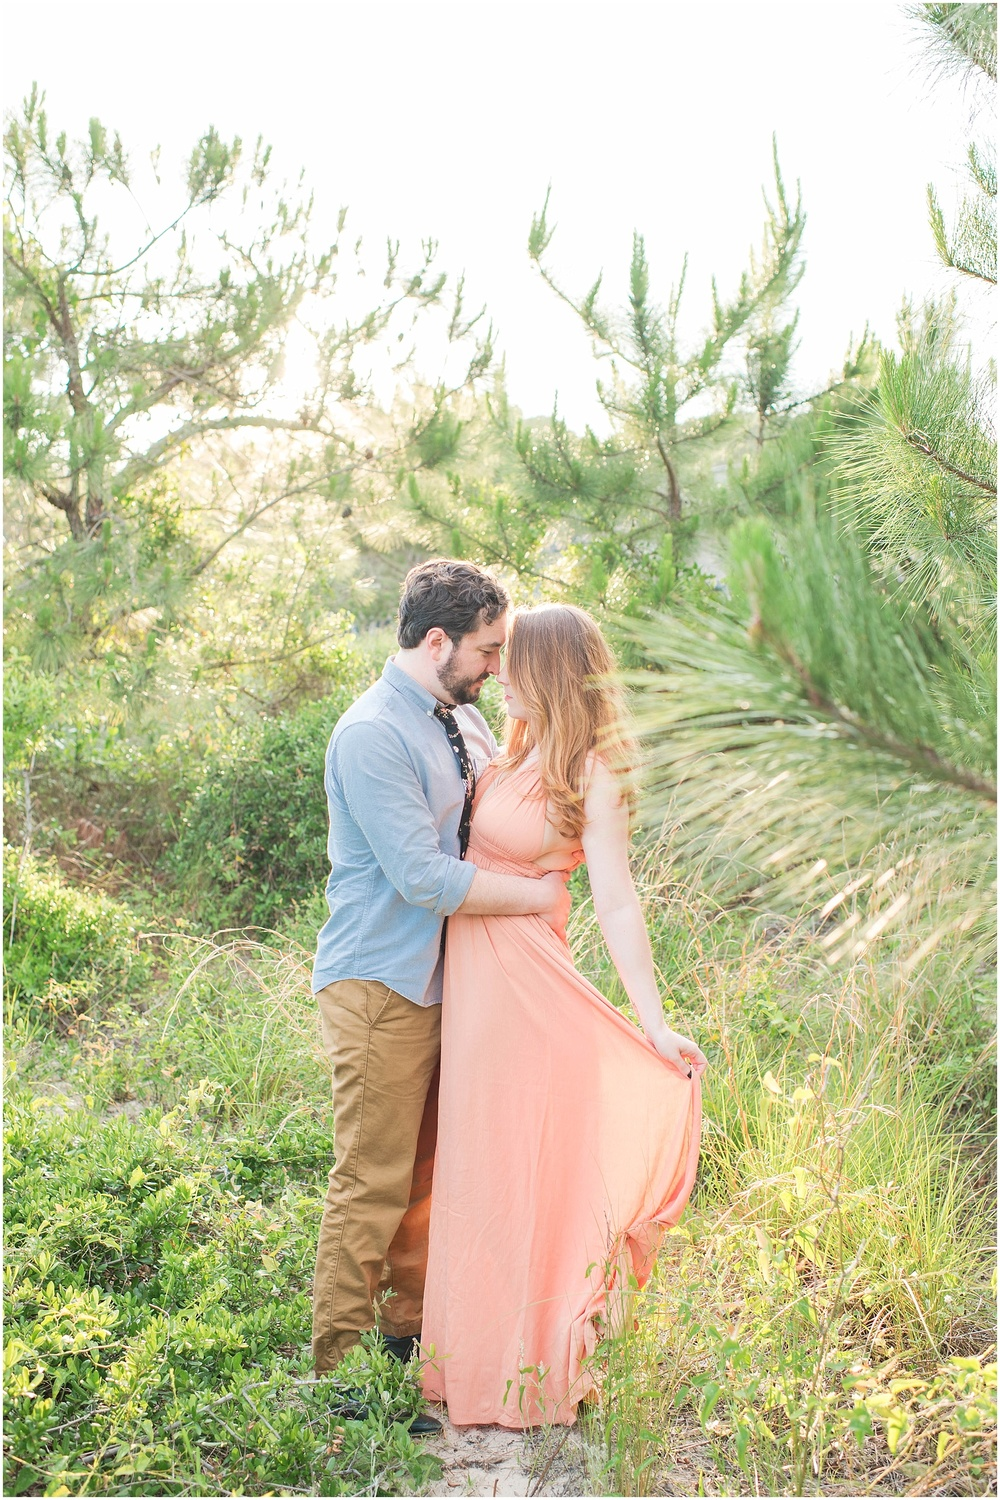 Hannah Leigh Photography Kiawah Island Anniversary Session_0384.jpg